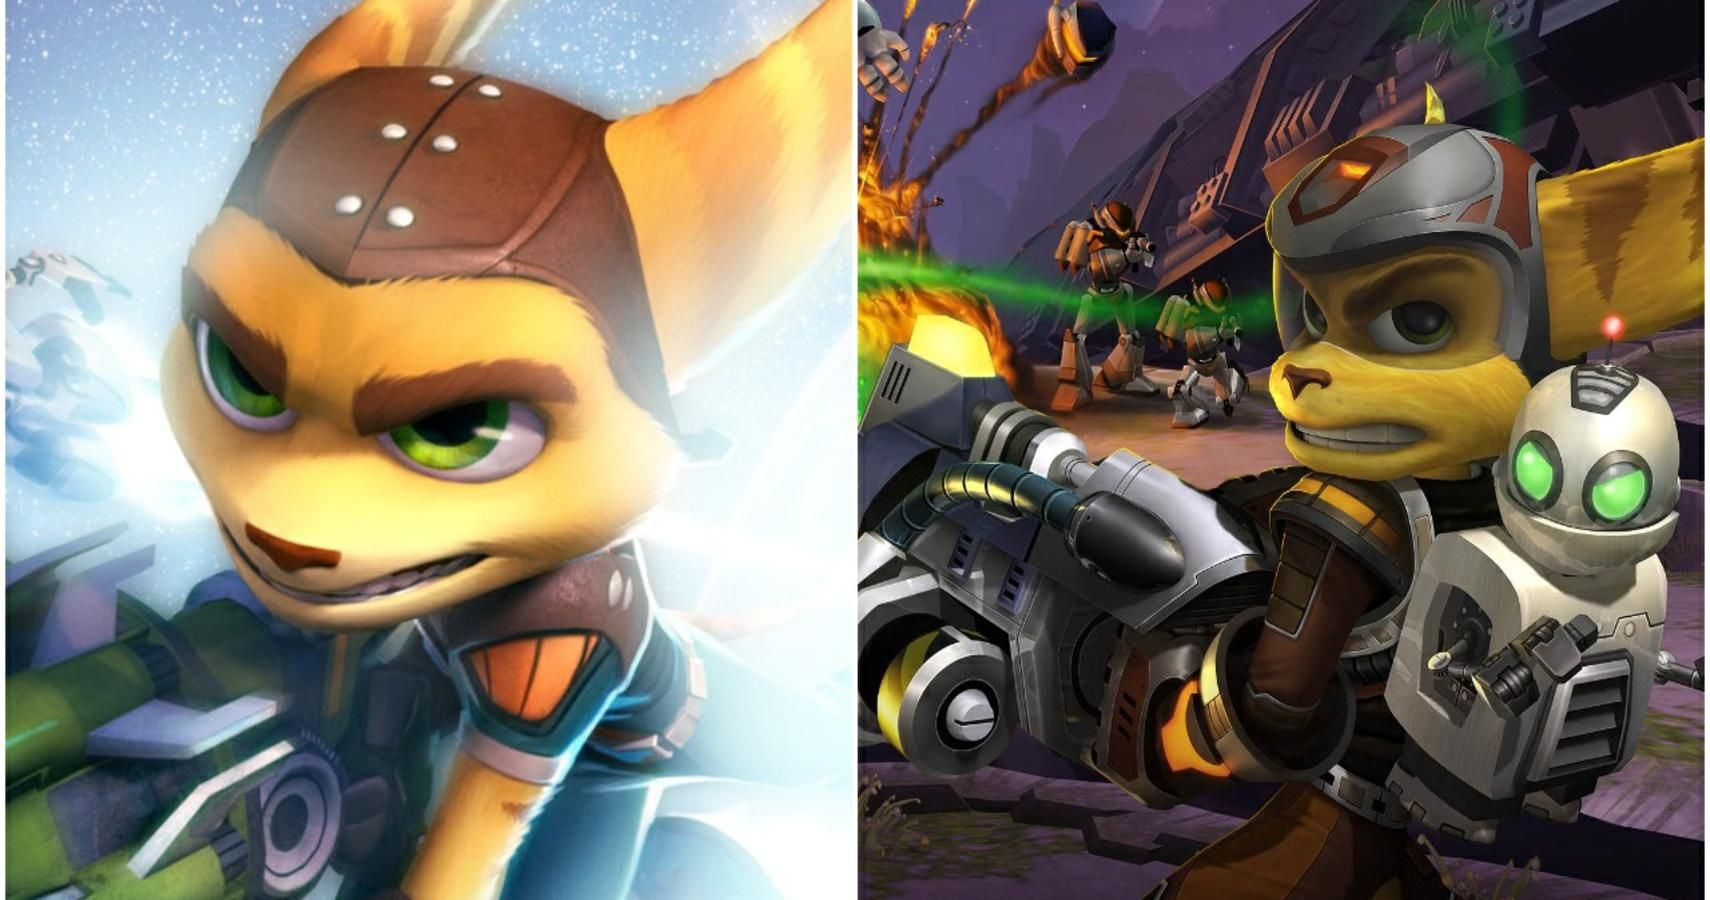 Ratchet Clank All The Games Ranked According To Metacritic